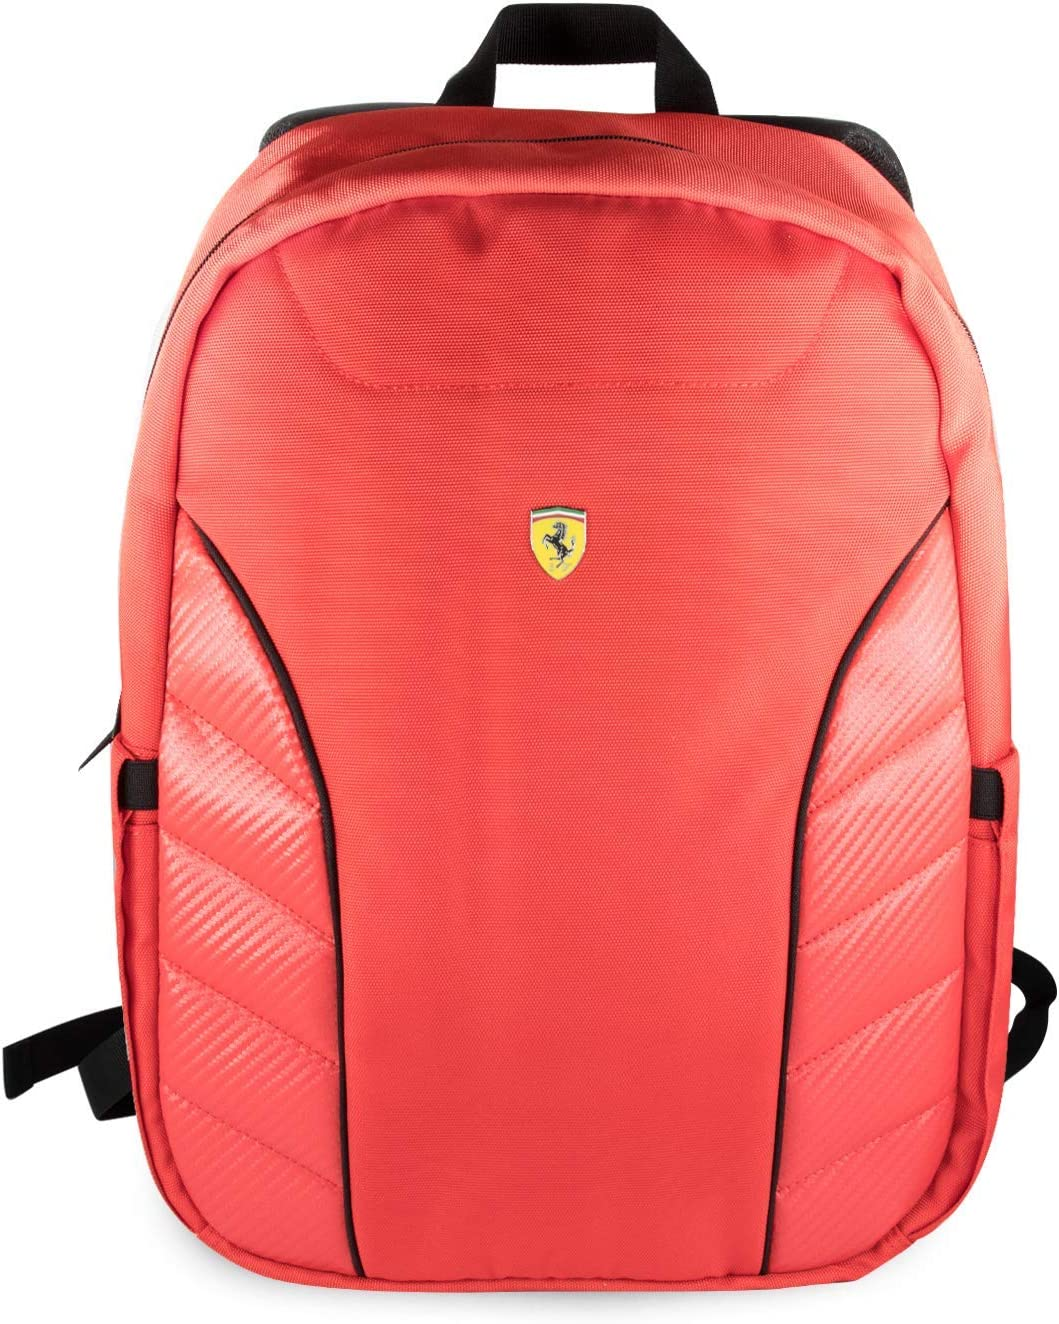 "Ferrari Computer Backpack Pit Stop Collection Scuderia 15"" Nylon PU Carbon Dual Compartment for 15.6"" MacBook Pro Bag and a Slim-Fit pocket for an iPad, iPad Mini, or tablet up to 10.1'' (Red)"